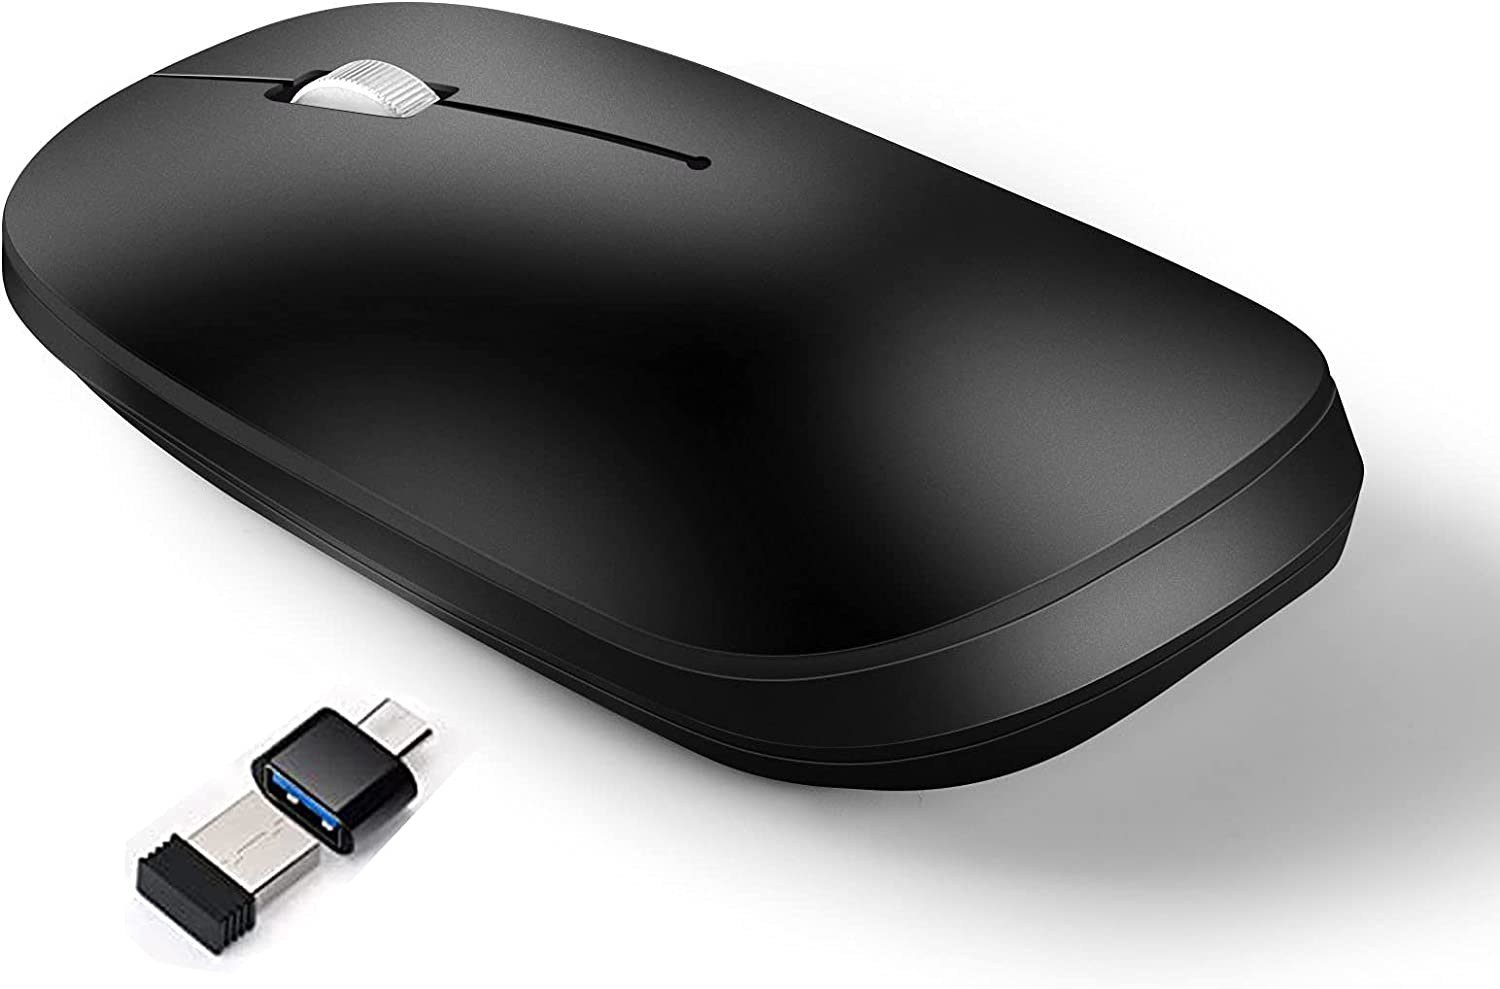 E&G Rechargeable Bluetooth Mouse Notebook Wireless Mouse Three Modes, Computer, Mobile Phone, Notebook Computer, PC, Notebook Computer and MacOS Series Compatible Wireless Mouse (Black)